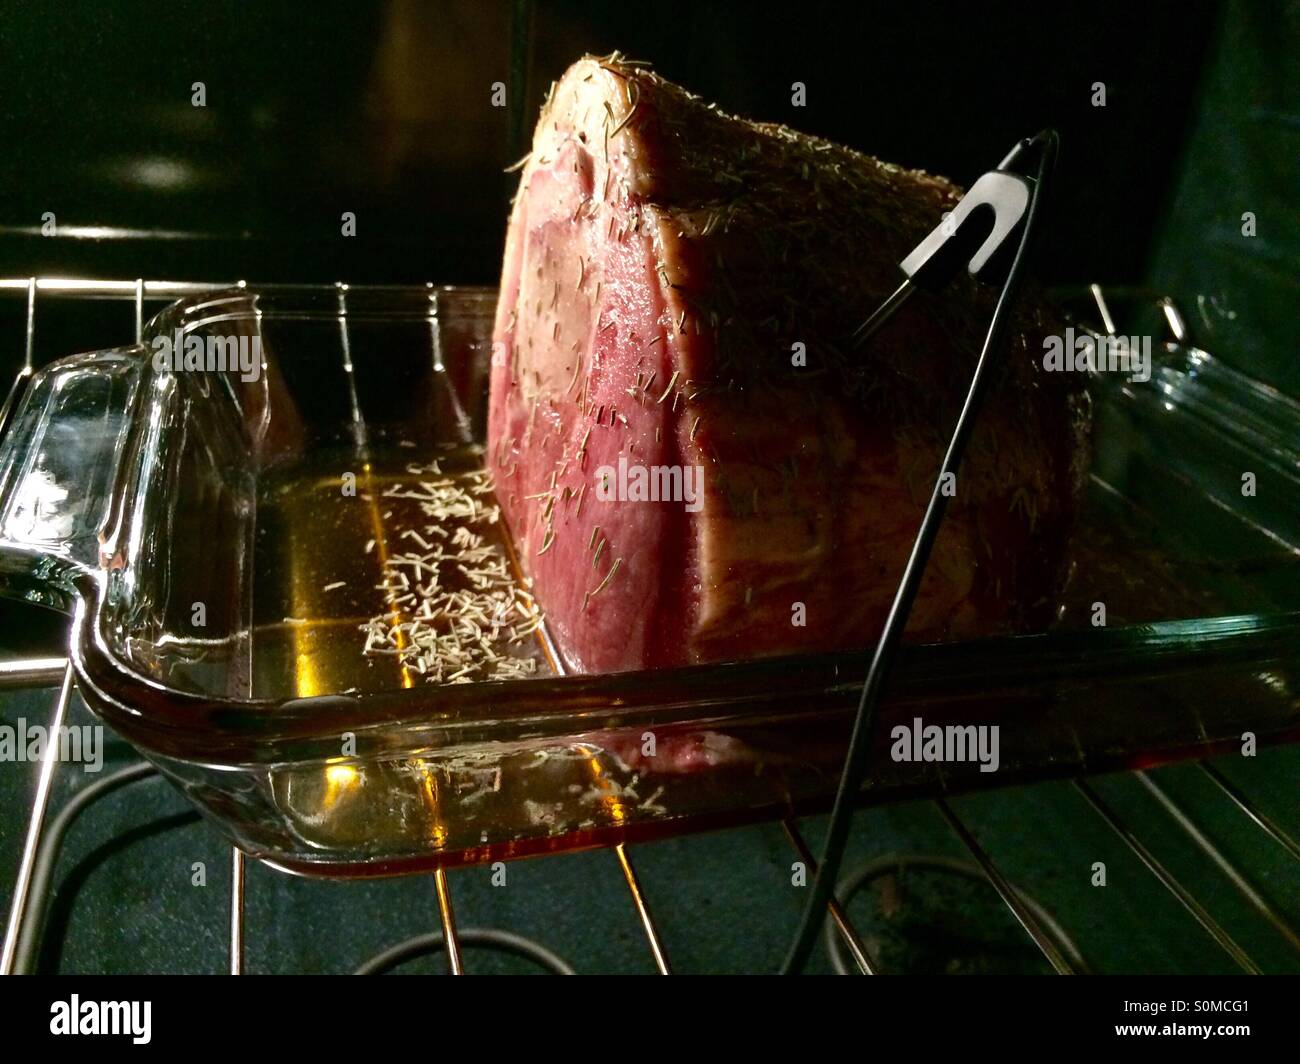 Berkshire ham with maple syrup and rosemary baking in oven with temperature probe - Stock Image